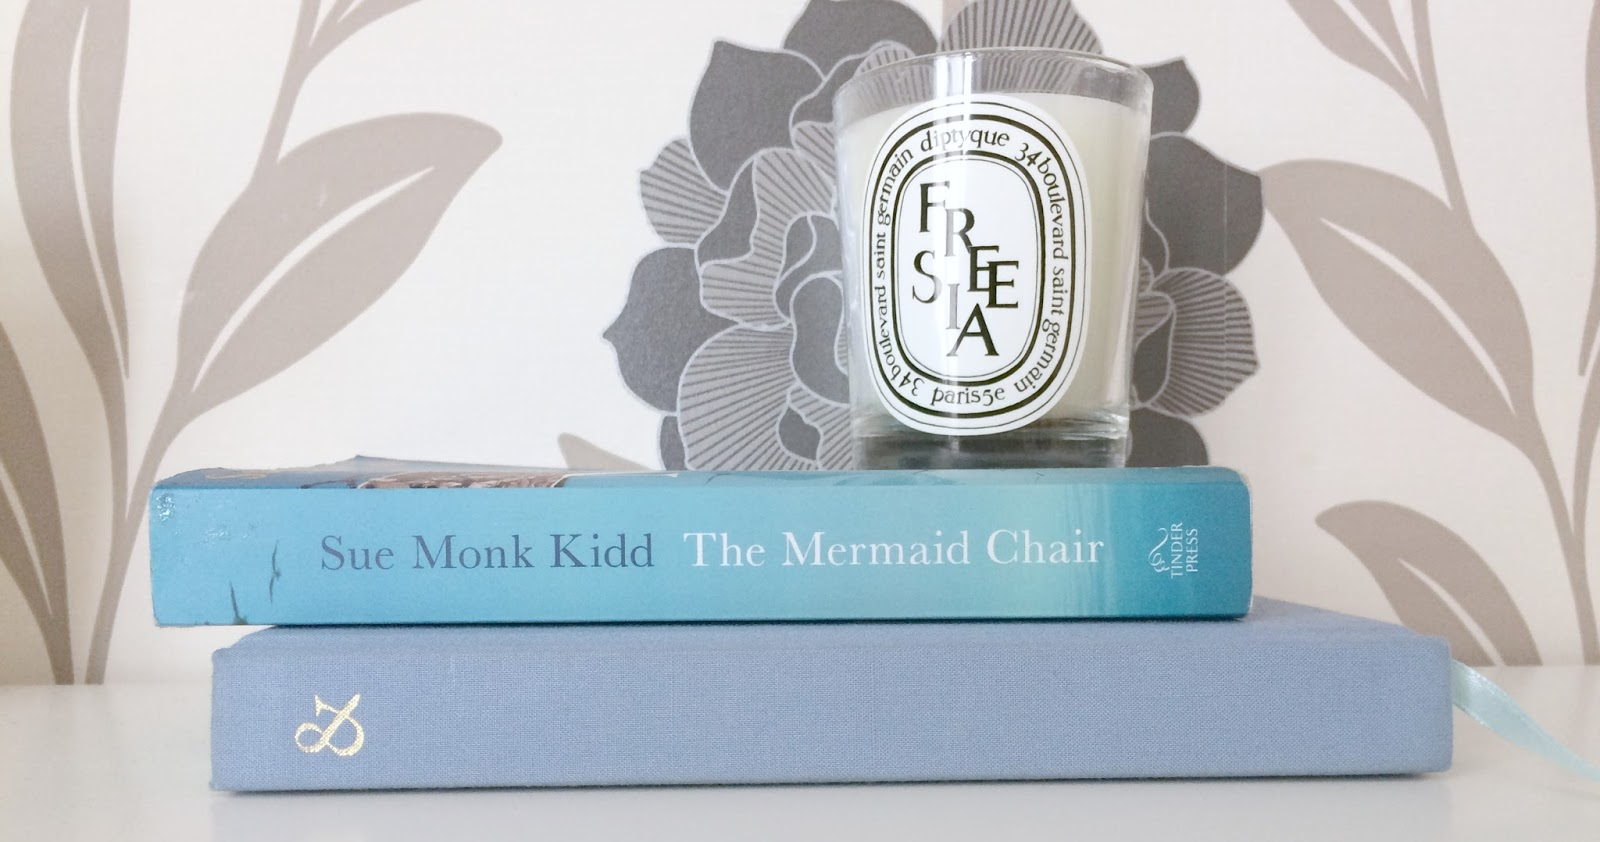 The Mermaid Chair Adams Mfg Adirondack Chairs Lilac Scrapbook By Sue Monk Kidd Island Life Is Described In A Way That Like I Said Makes Me Think Ve Lived It And Details Of Monastery Were Fascinating